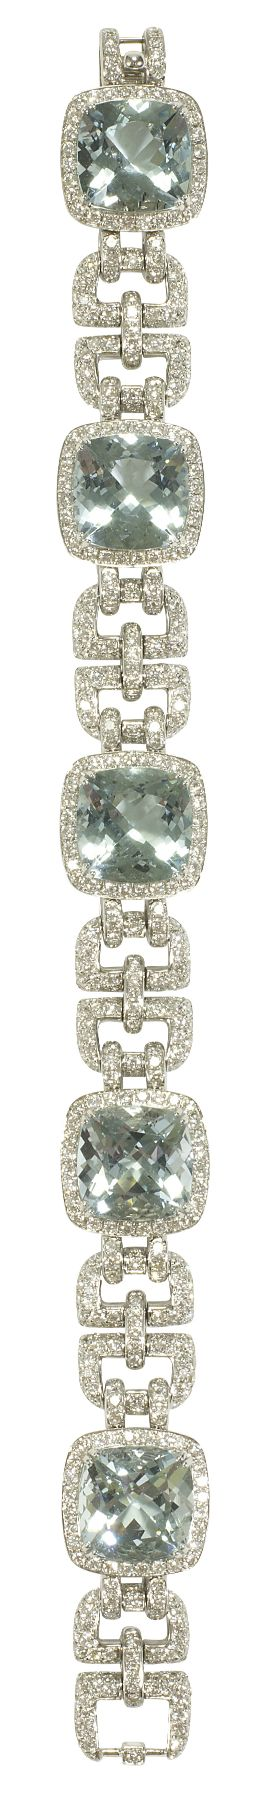 Asprey Windsor Bracelet, Aquamarine. Windsor Bracelet in aquamarine with pavé d...